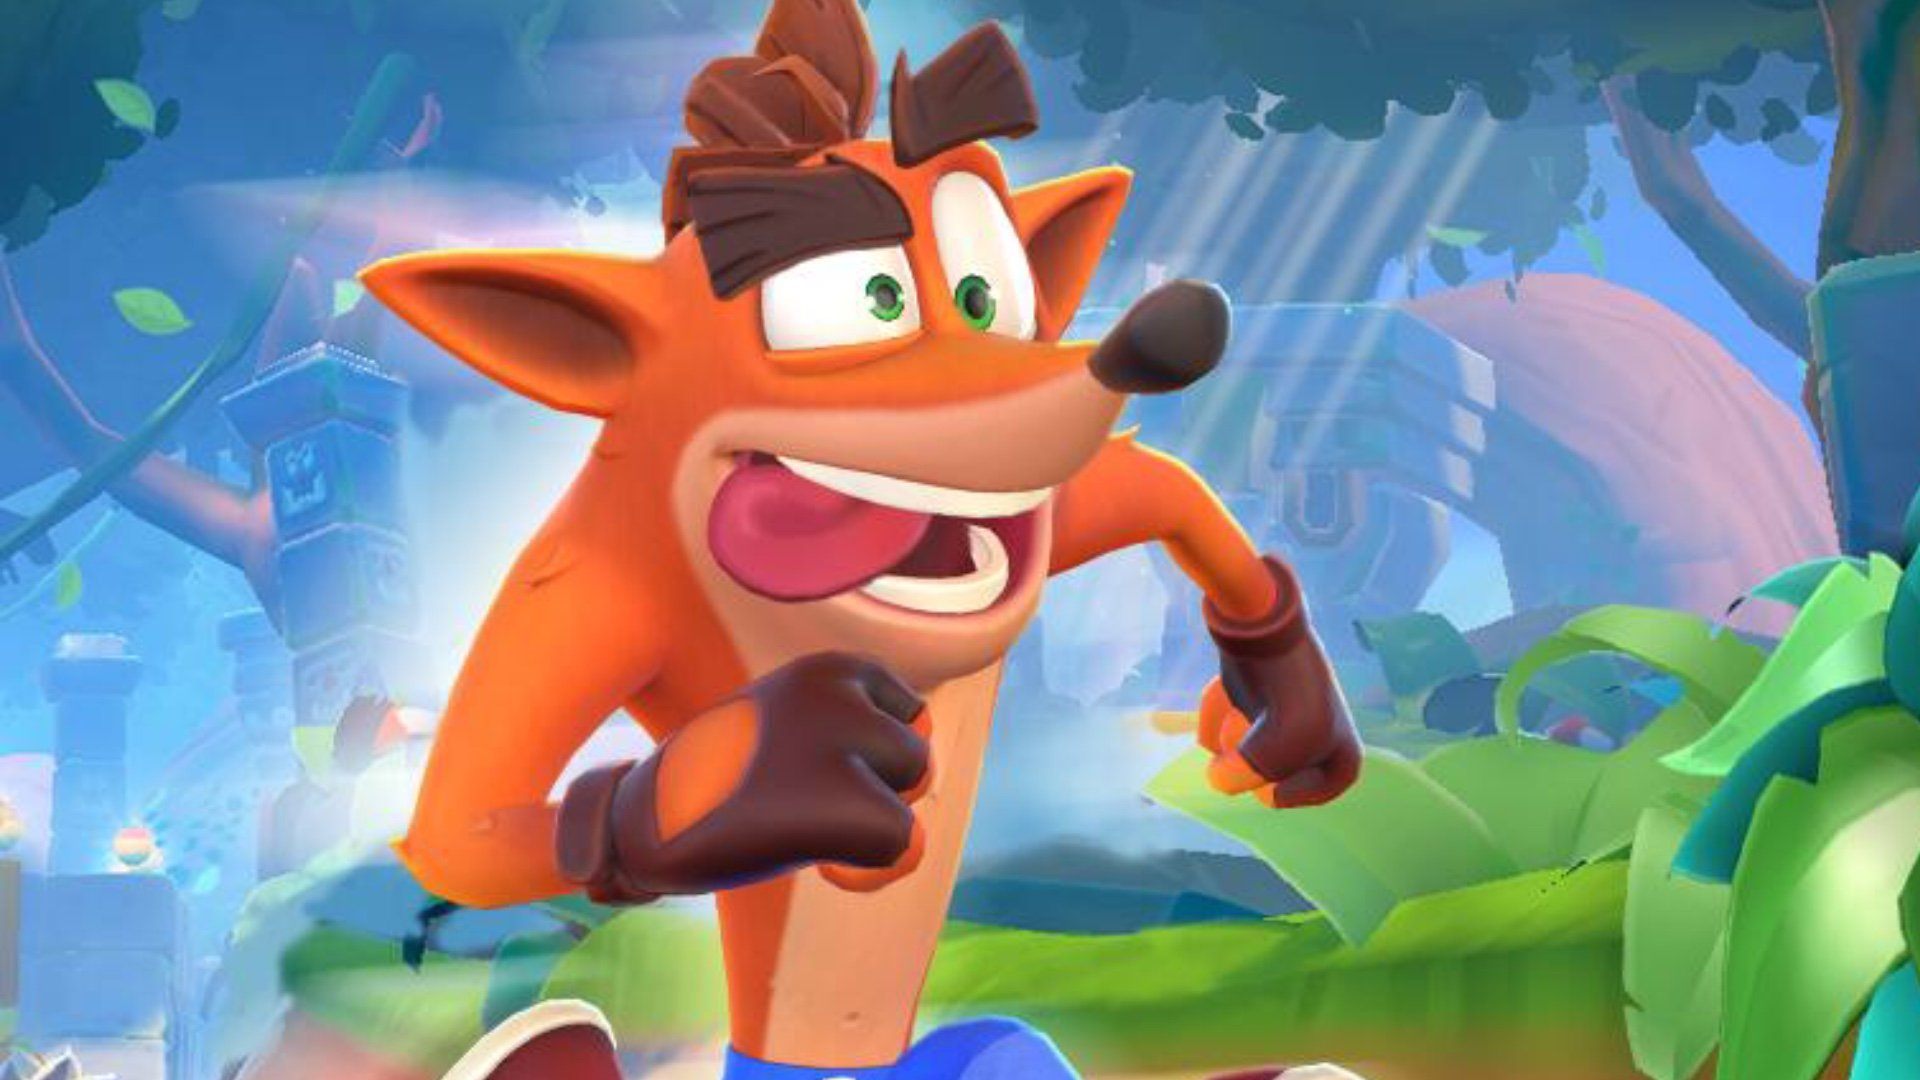 'Crash Bandicoot Mobile' from King and Activision Has Soft Launched on Google Play for Android – TouchArcade